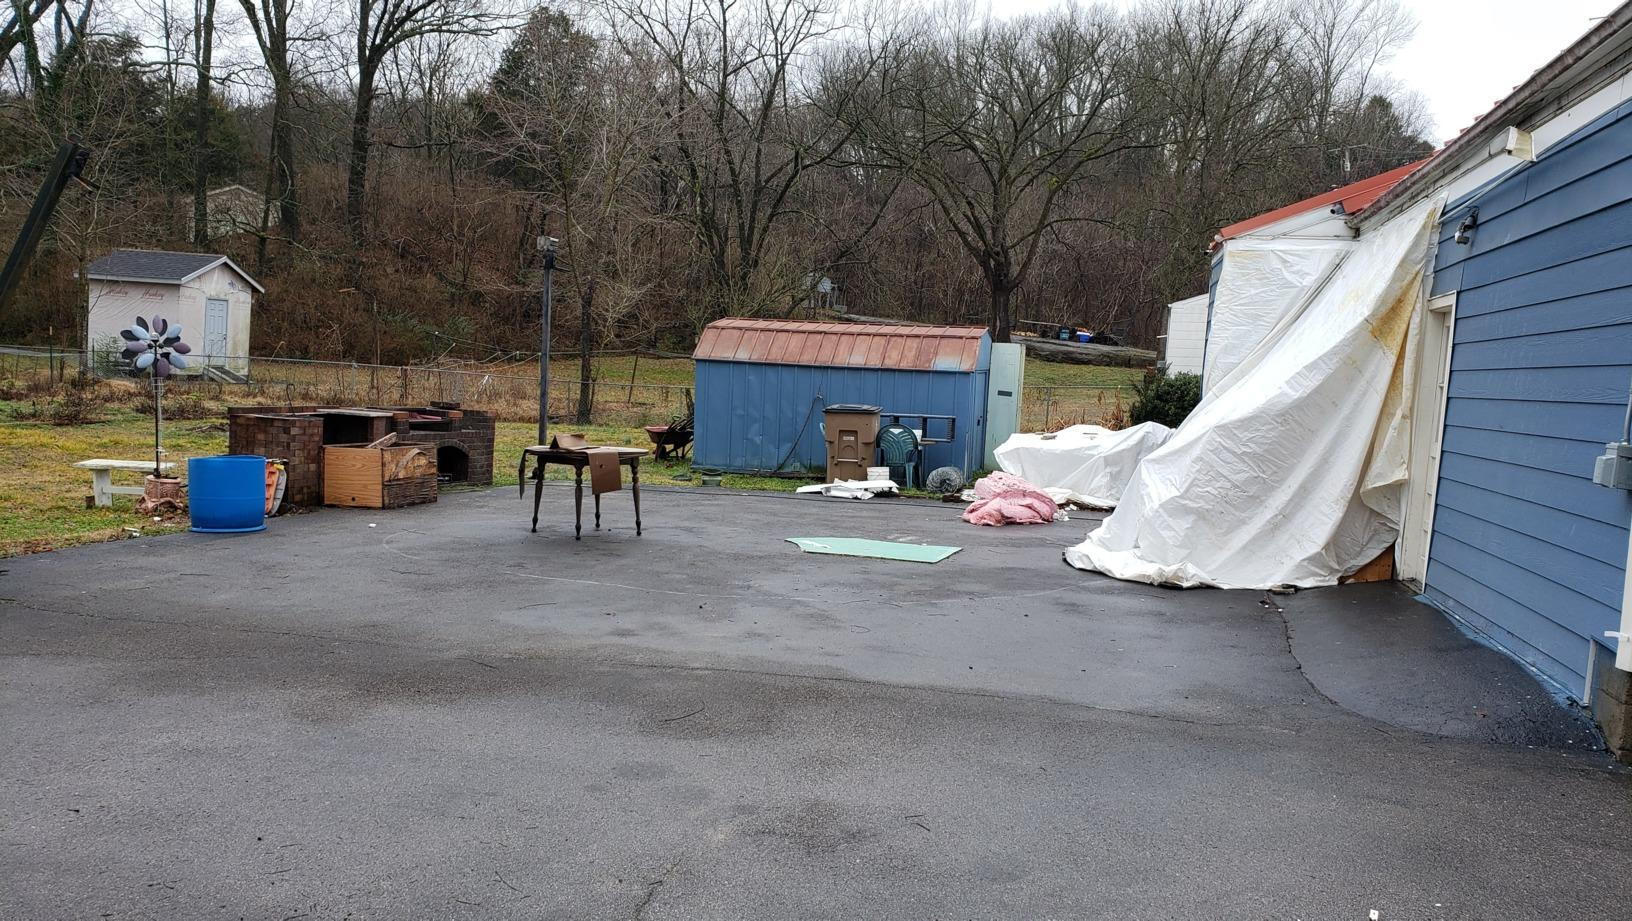 Collapsed Carport Removal in Nashville, TN - After Photo